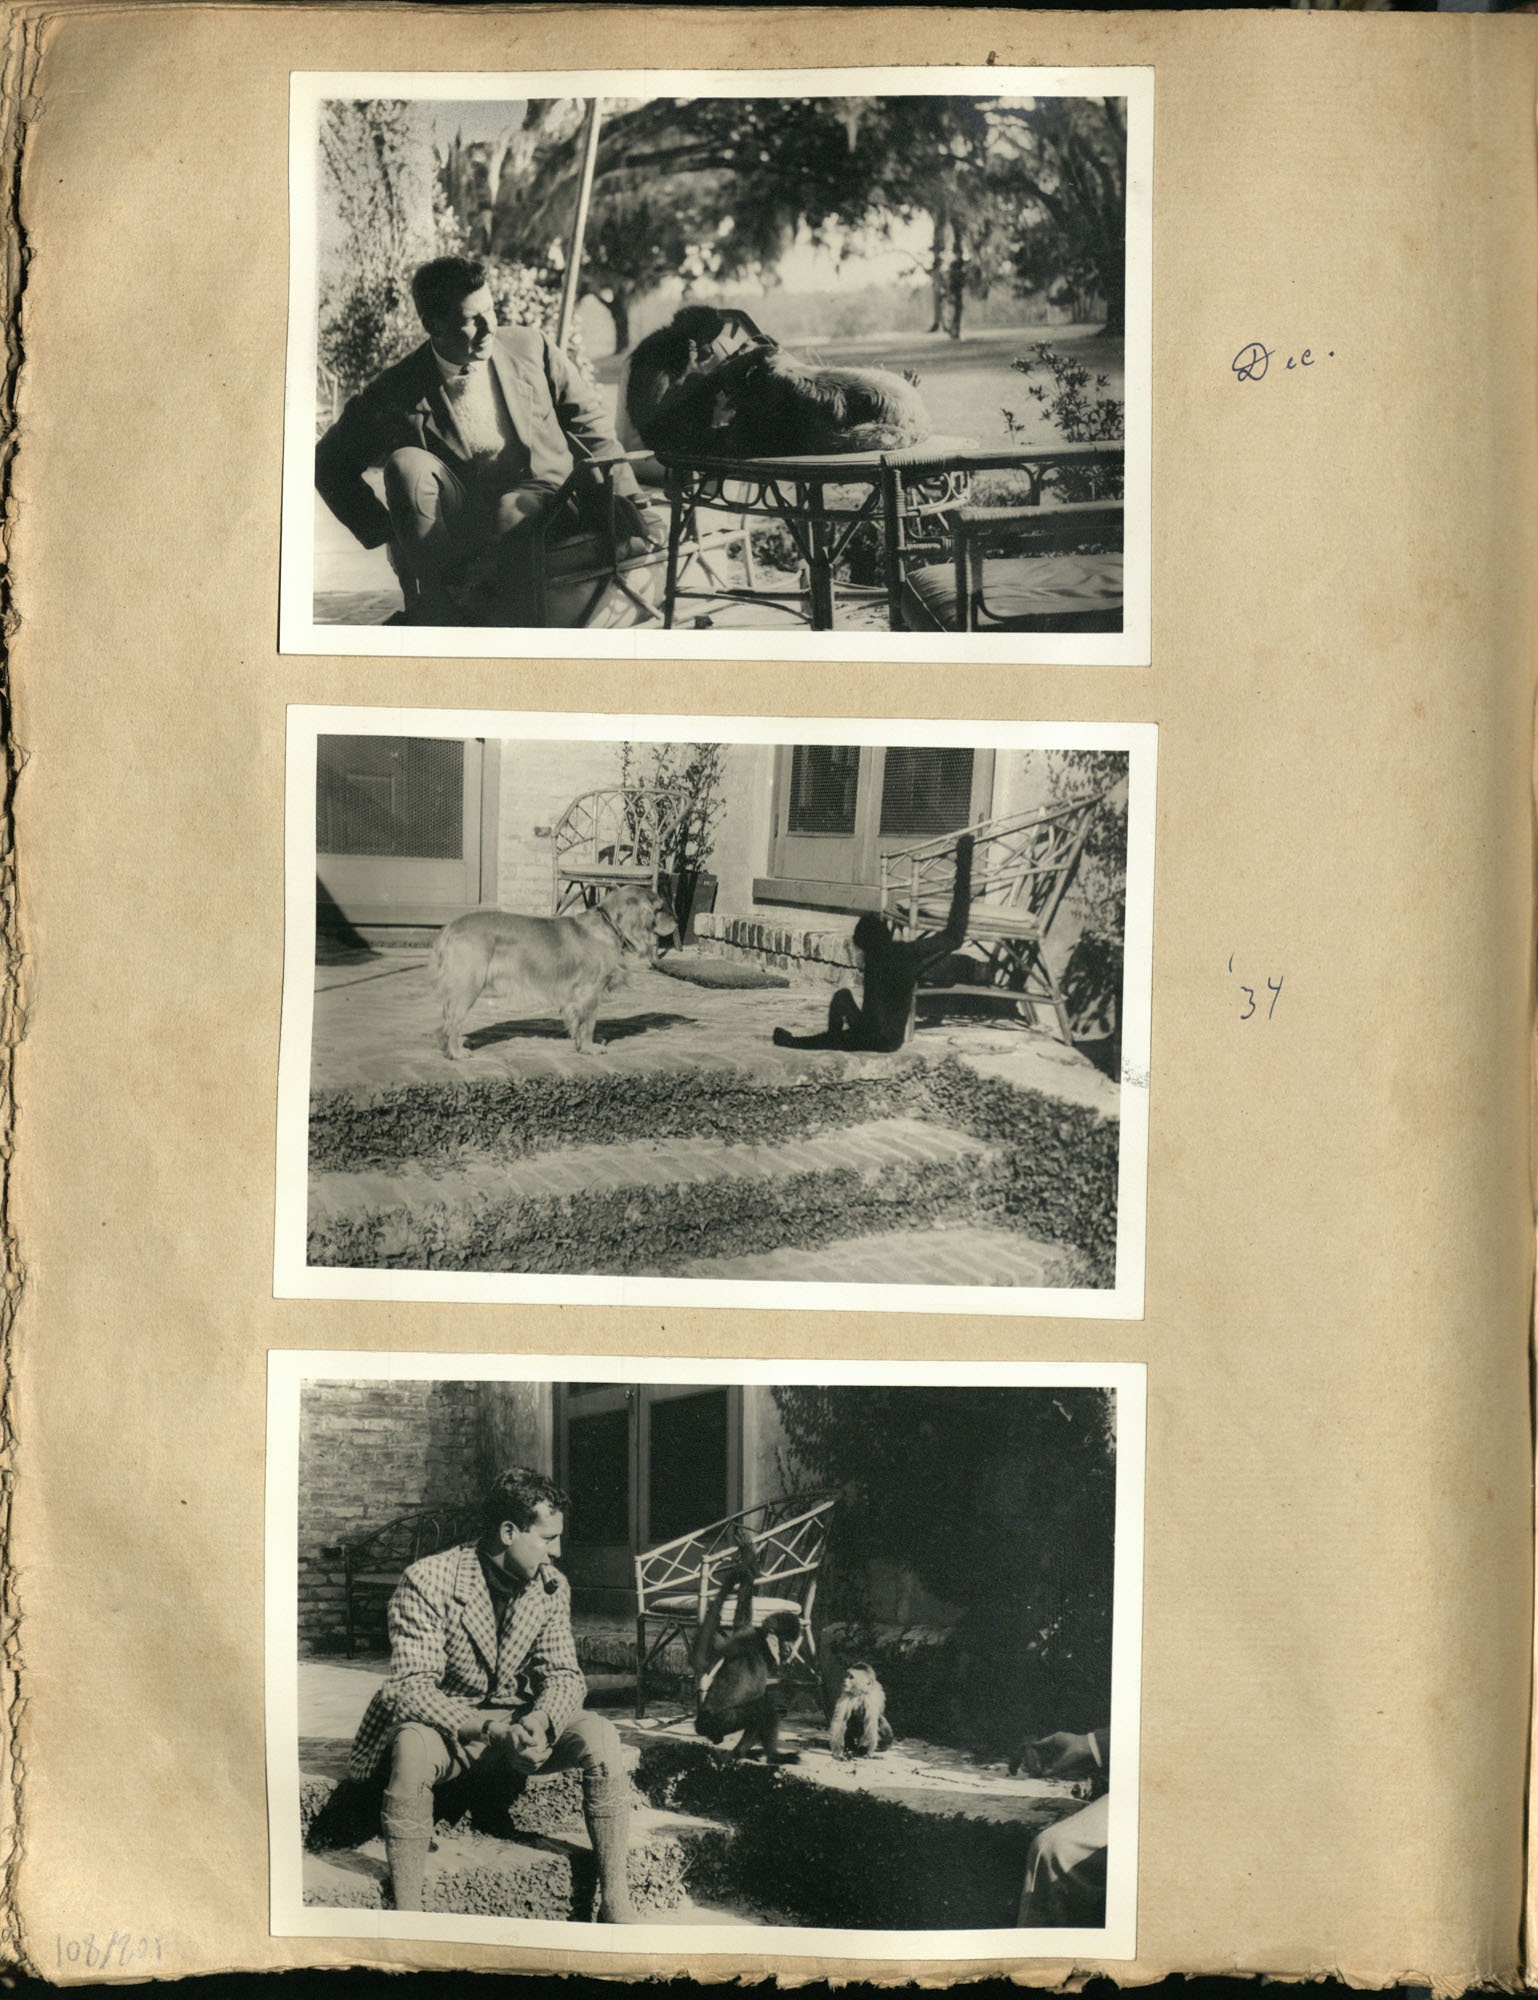 Early Medway and travels album, 1929-1937, page 108